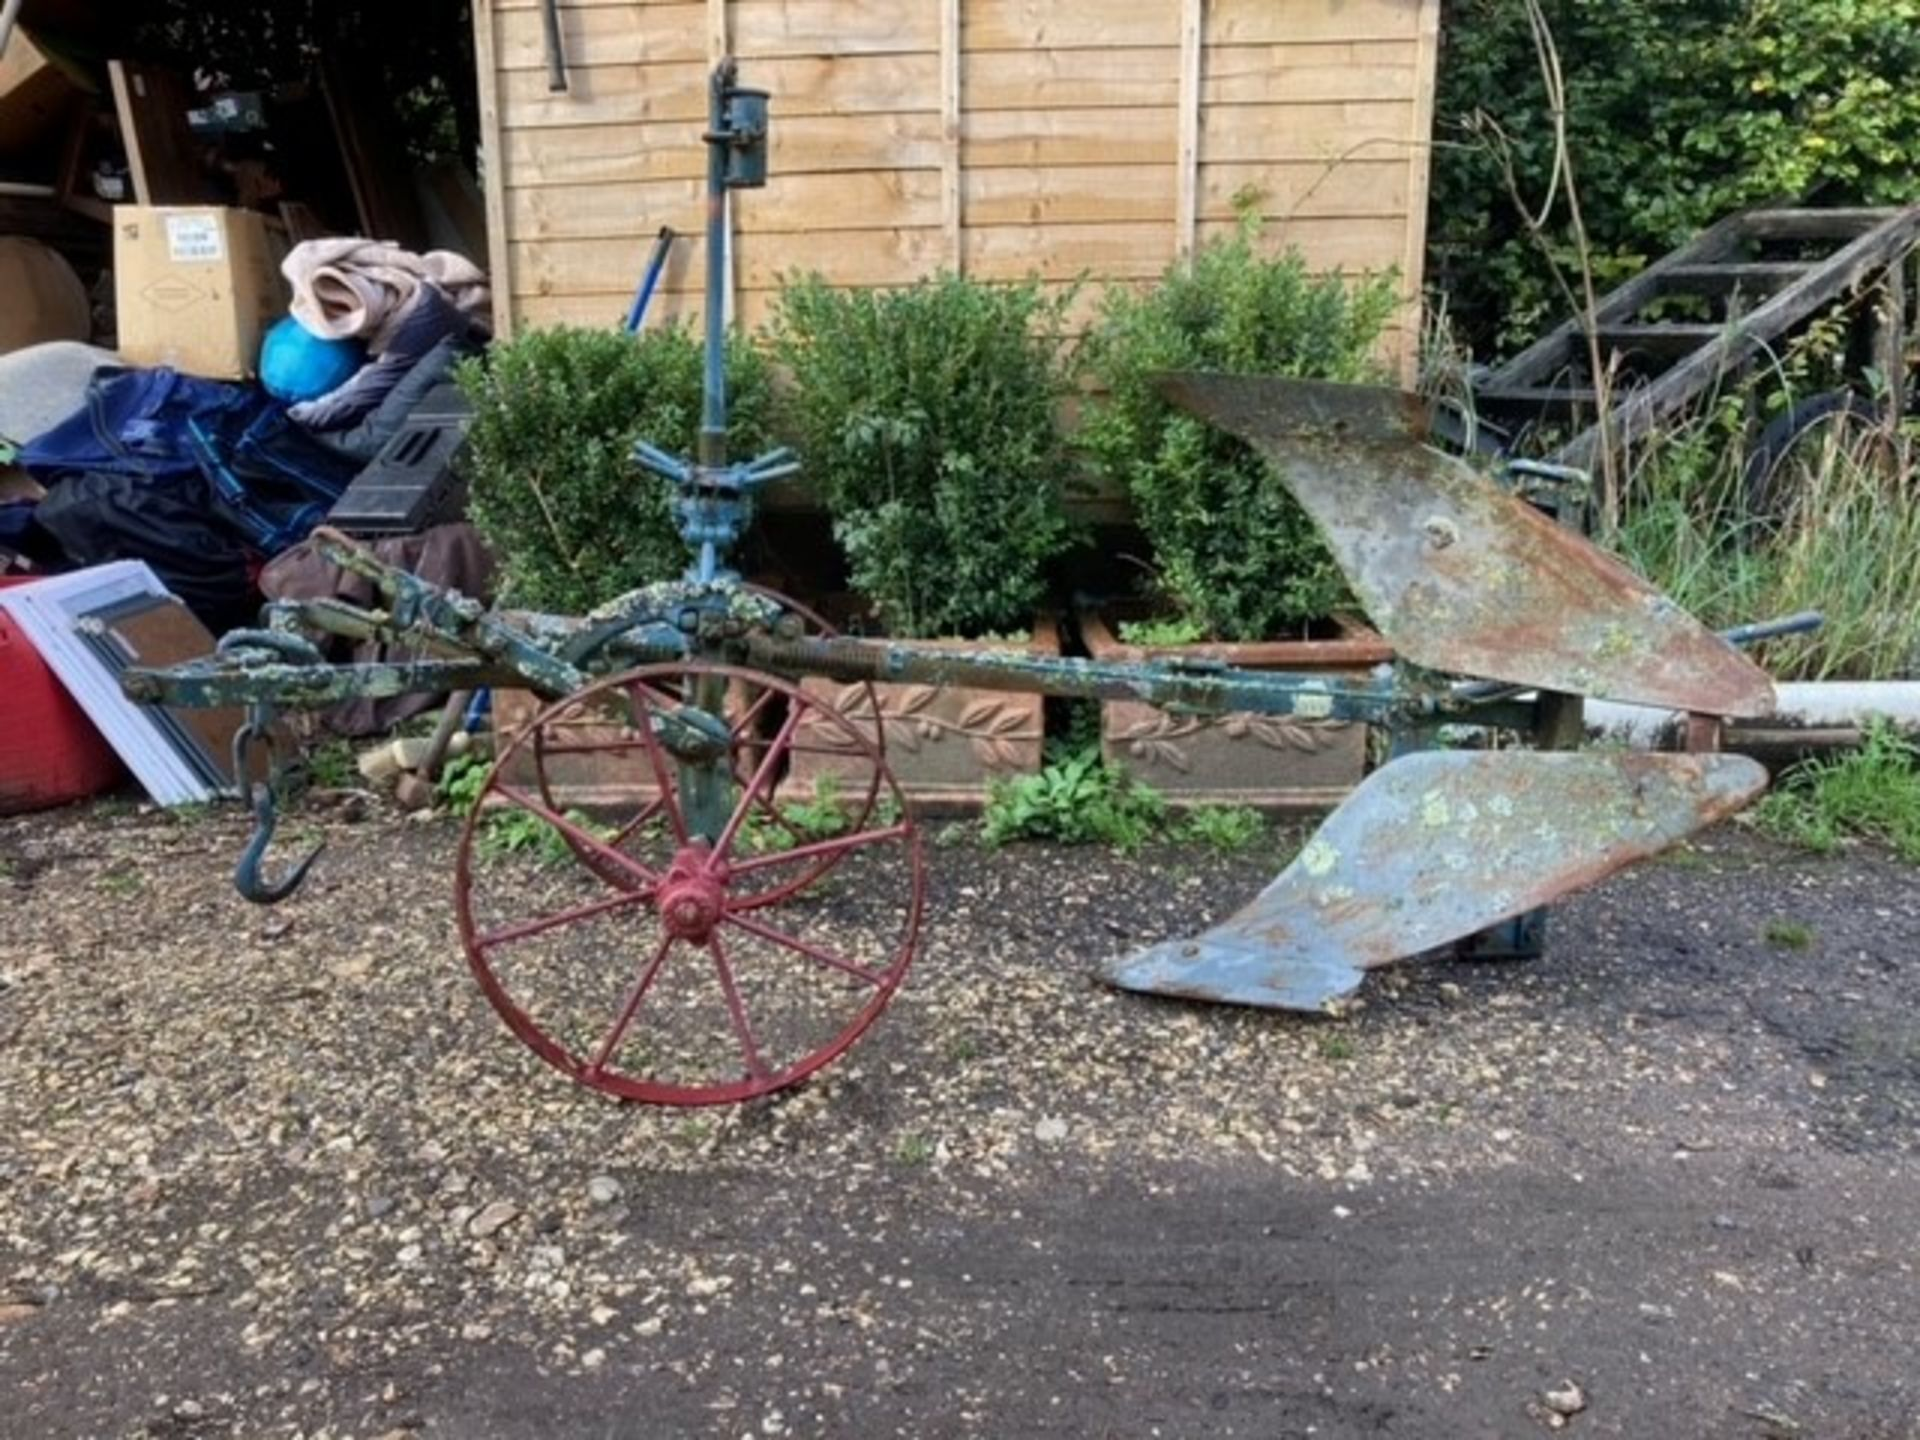 HORSE-DRAWN REVERSIBLEPLOUGH made by Brevet, and painted blue. Lot 14 is located at the Reading